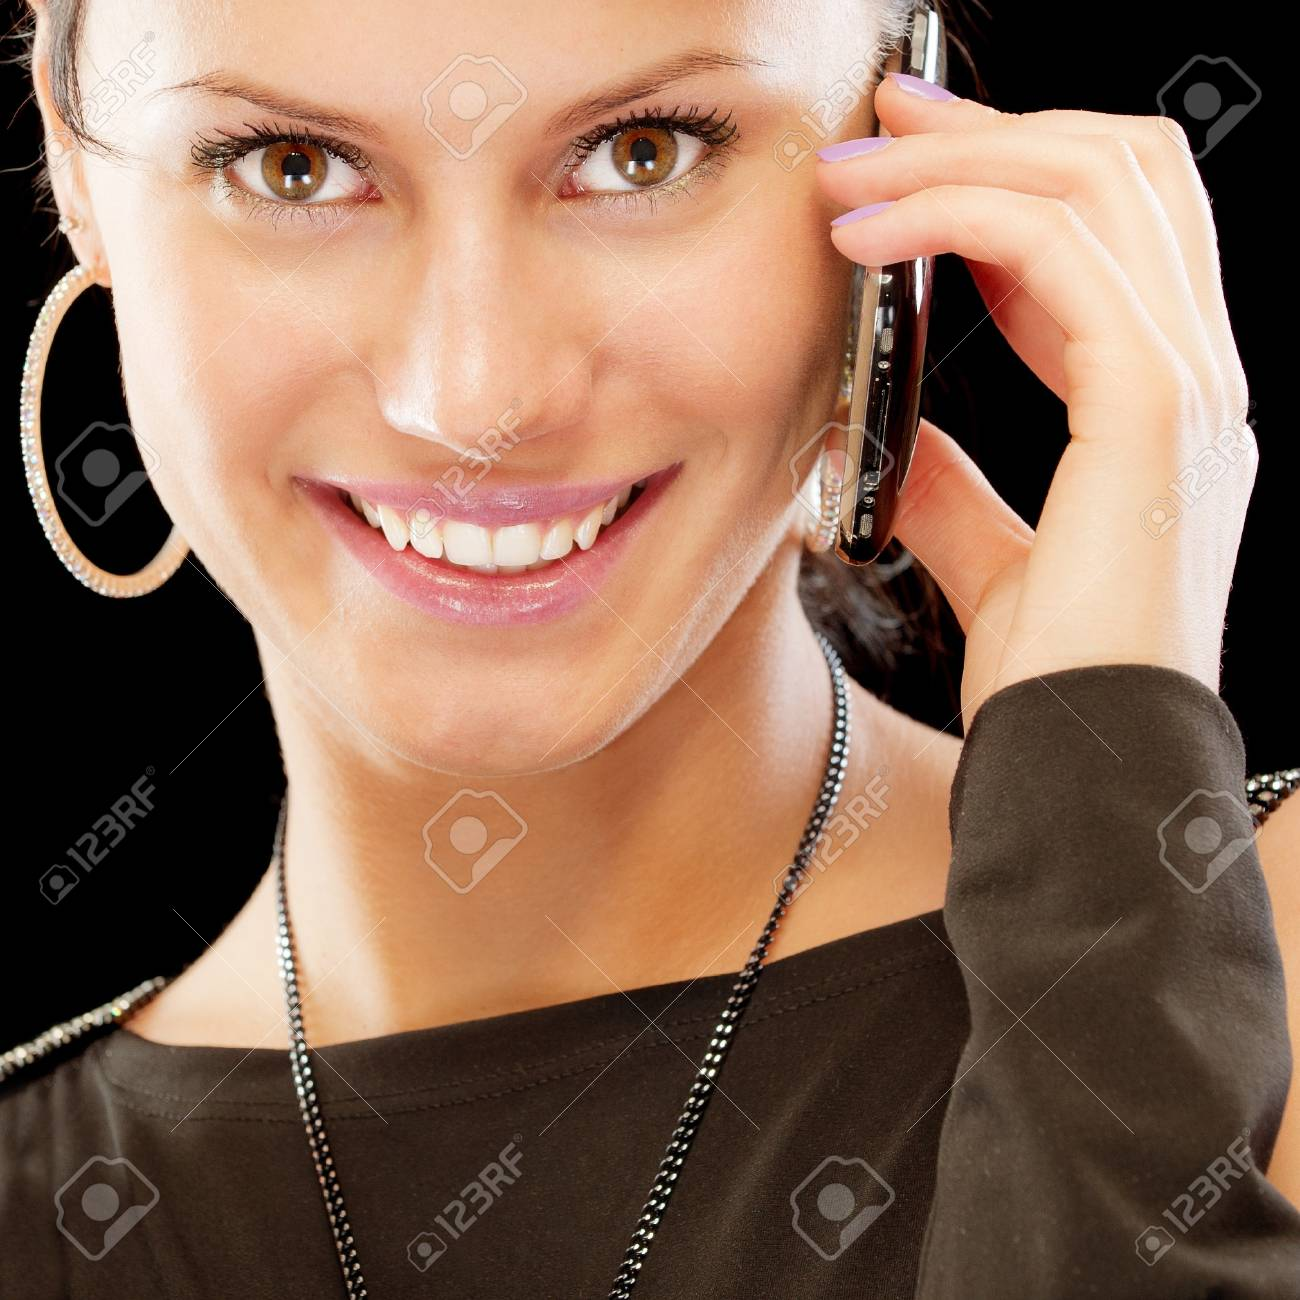 Smiling brunette speaks by mobile phone, isolated on black background. Stock Photo - 8016504